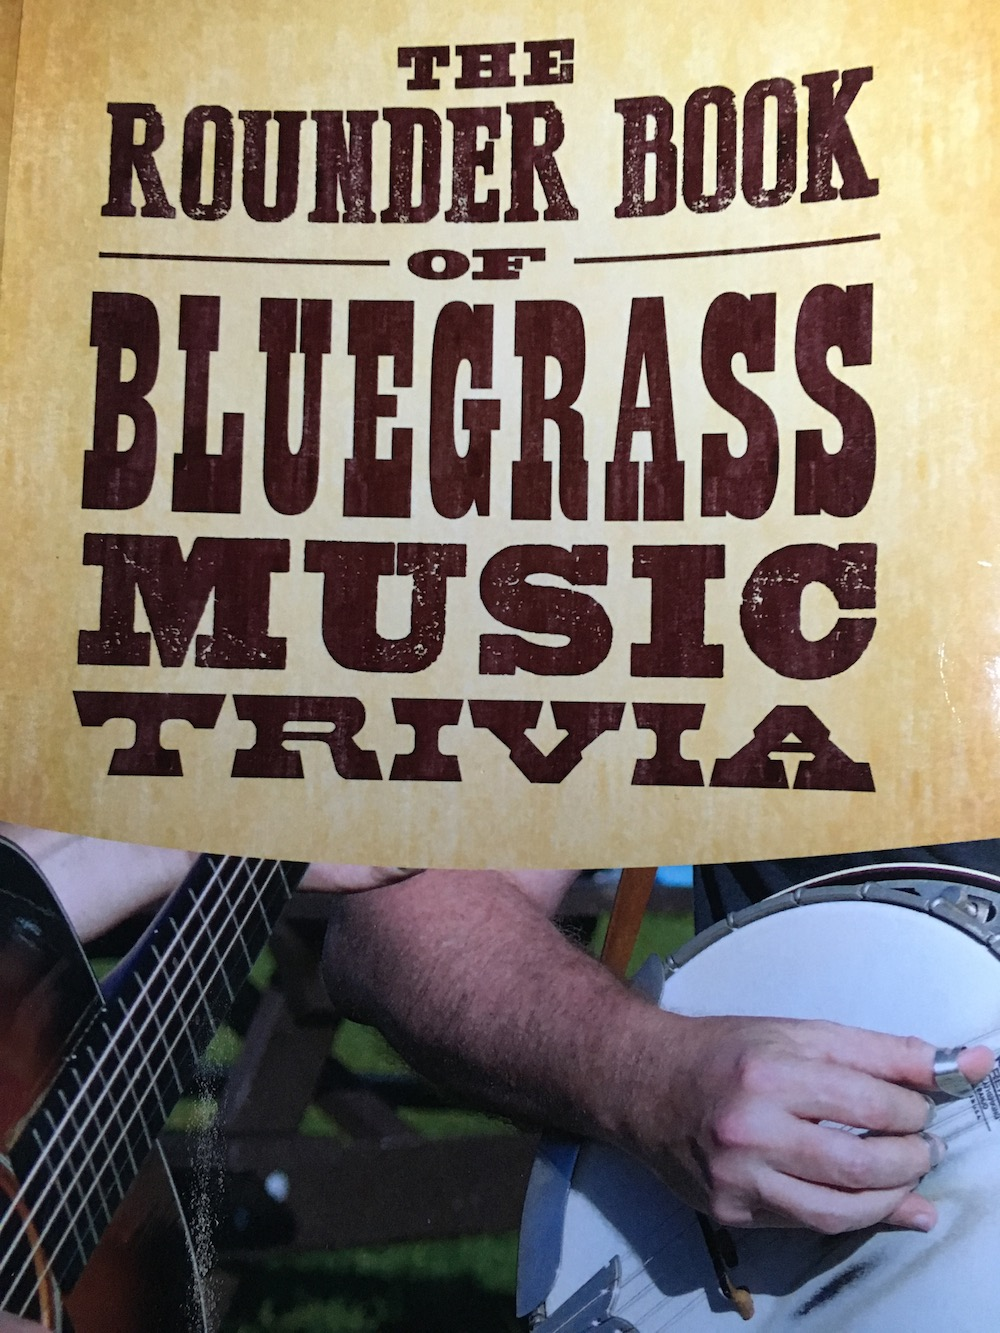 Test Your Knowledge of Bluegrass Trivia with This New Book